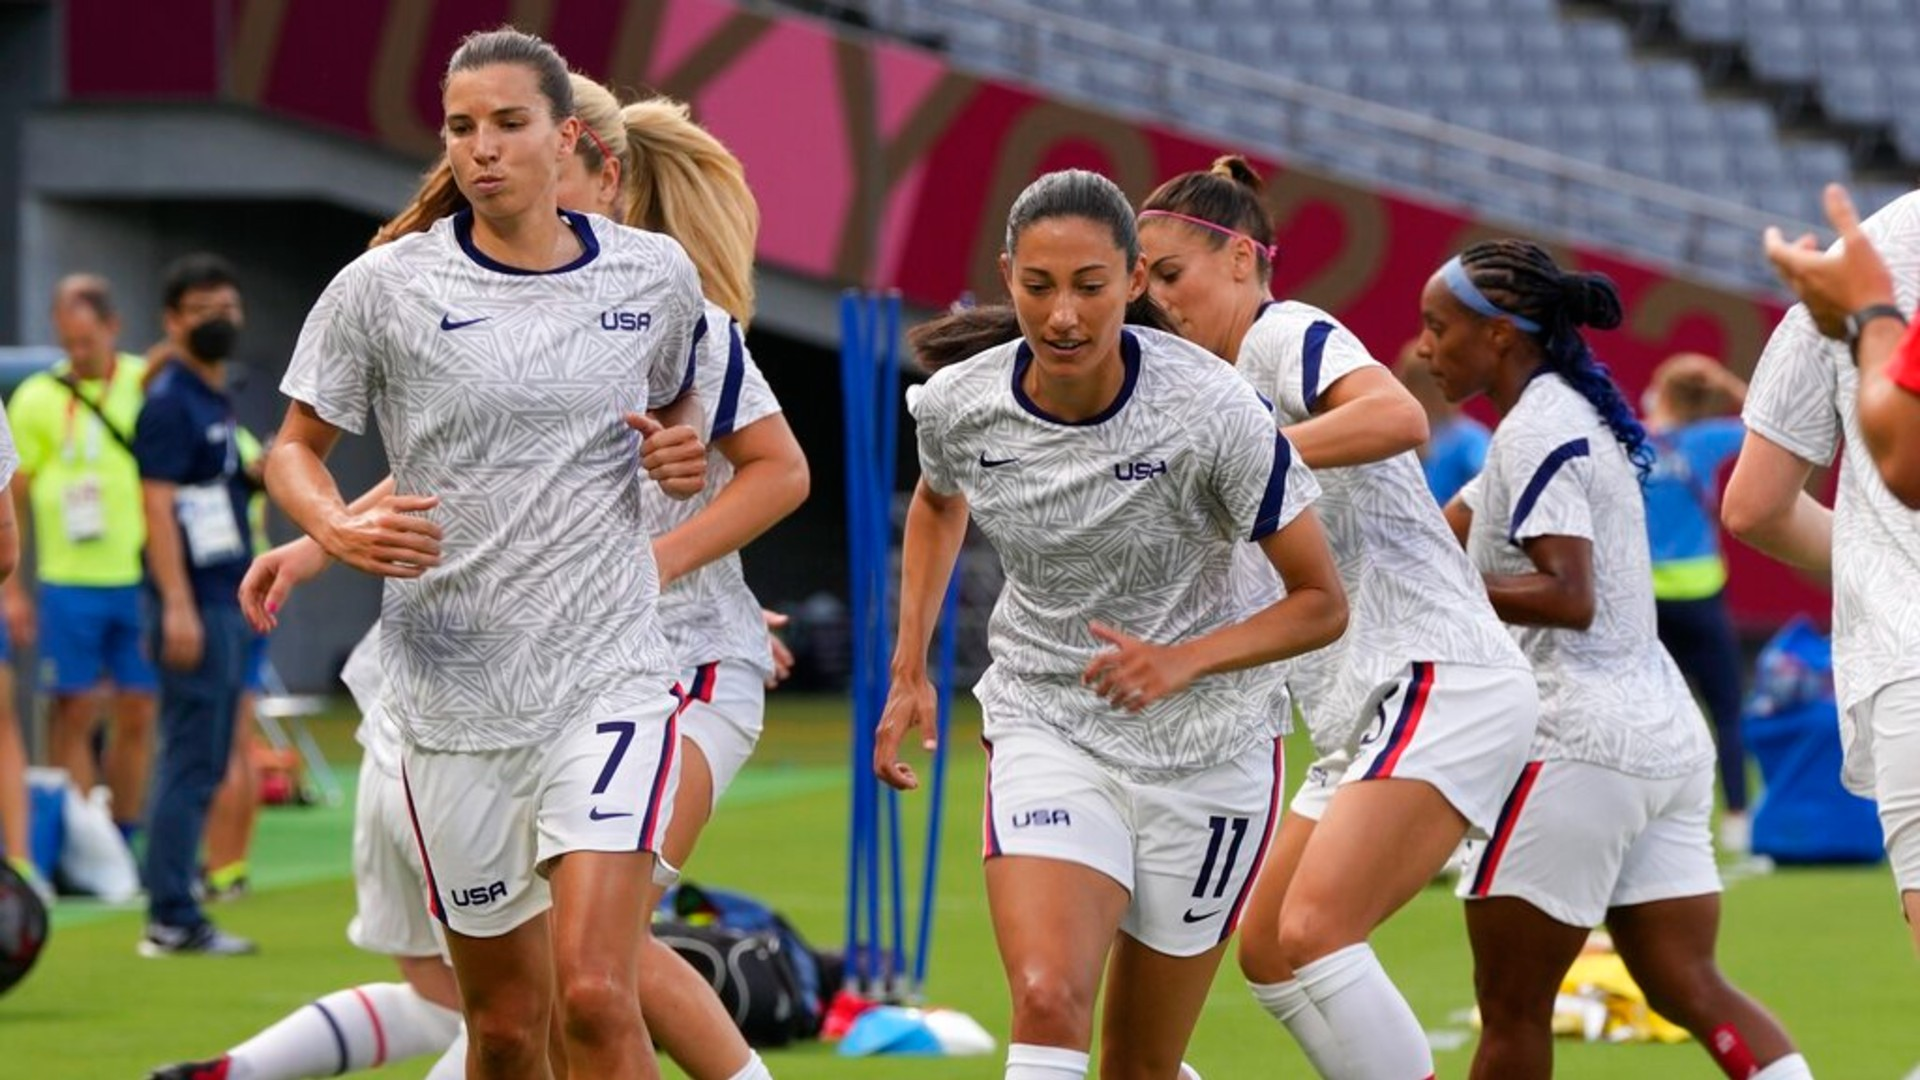 United States players warm up before a women's soccer match against Sweden at the 2020 Summer Olympics, Wednesday, July 21, 2021, in Tokyo. (AP Photo/Ricardo Mazalan)